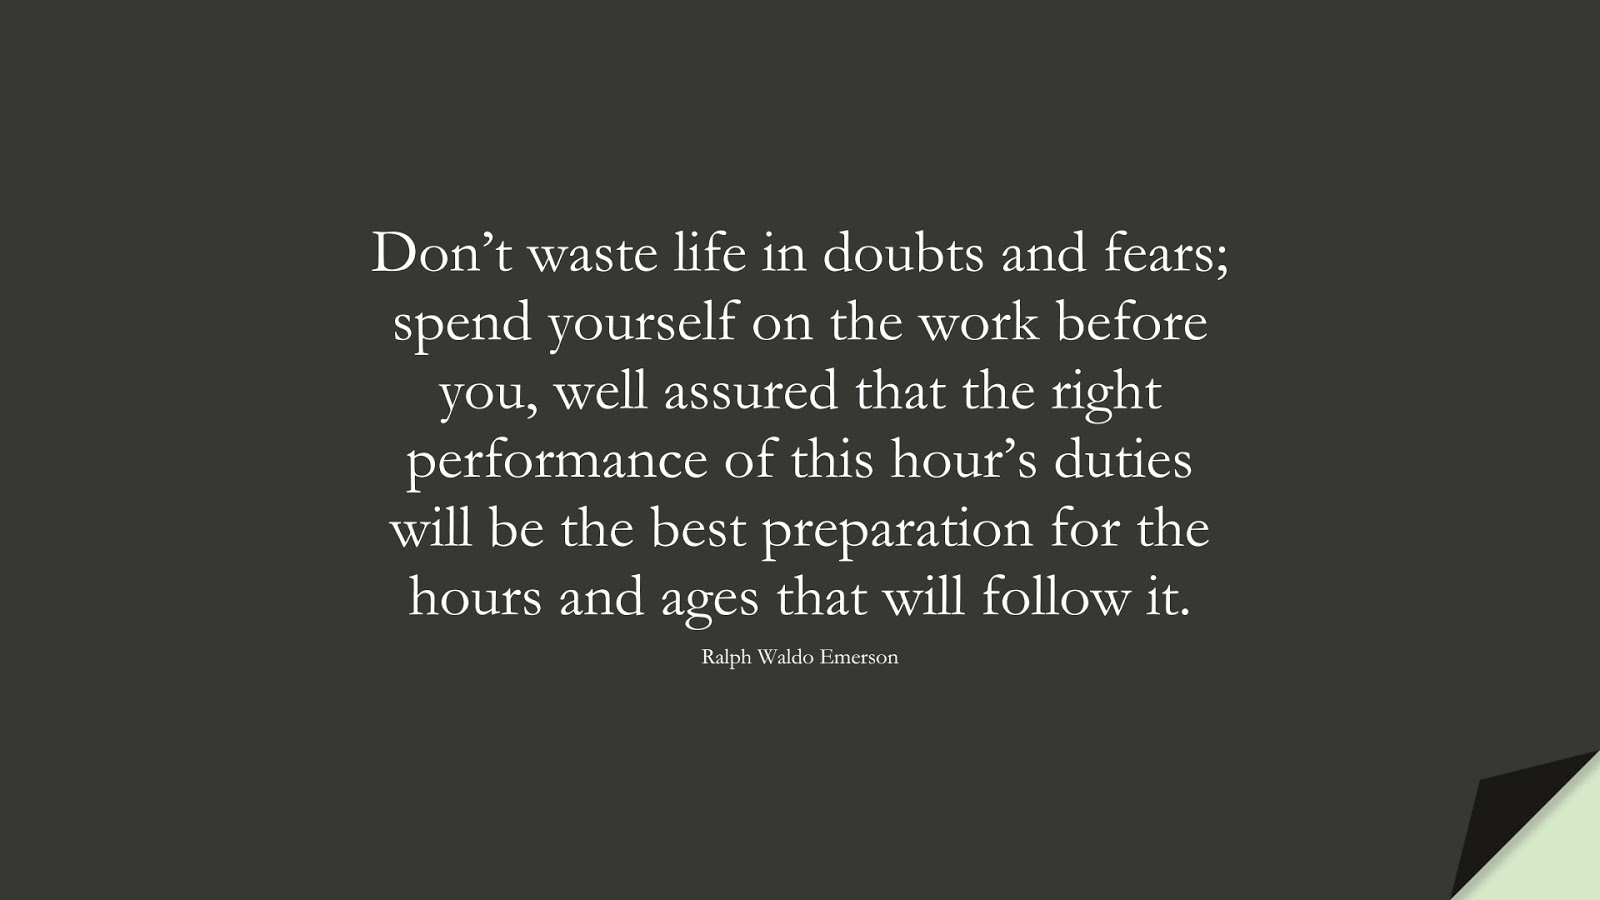 Don't waste life in doubts and fears; spend yourself on the work before you, well assured that the right performance of this hour's duties will be the best preparation for the hours and ages that will follow it. (Ralph Waldo Emerson);  #FearQuotes